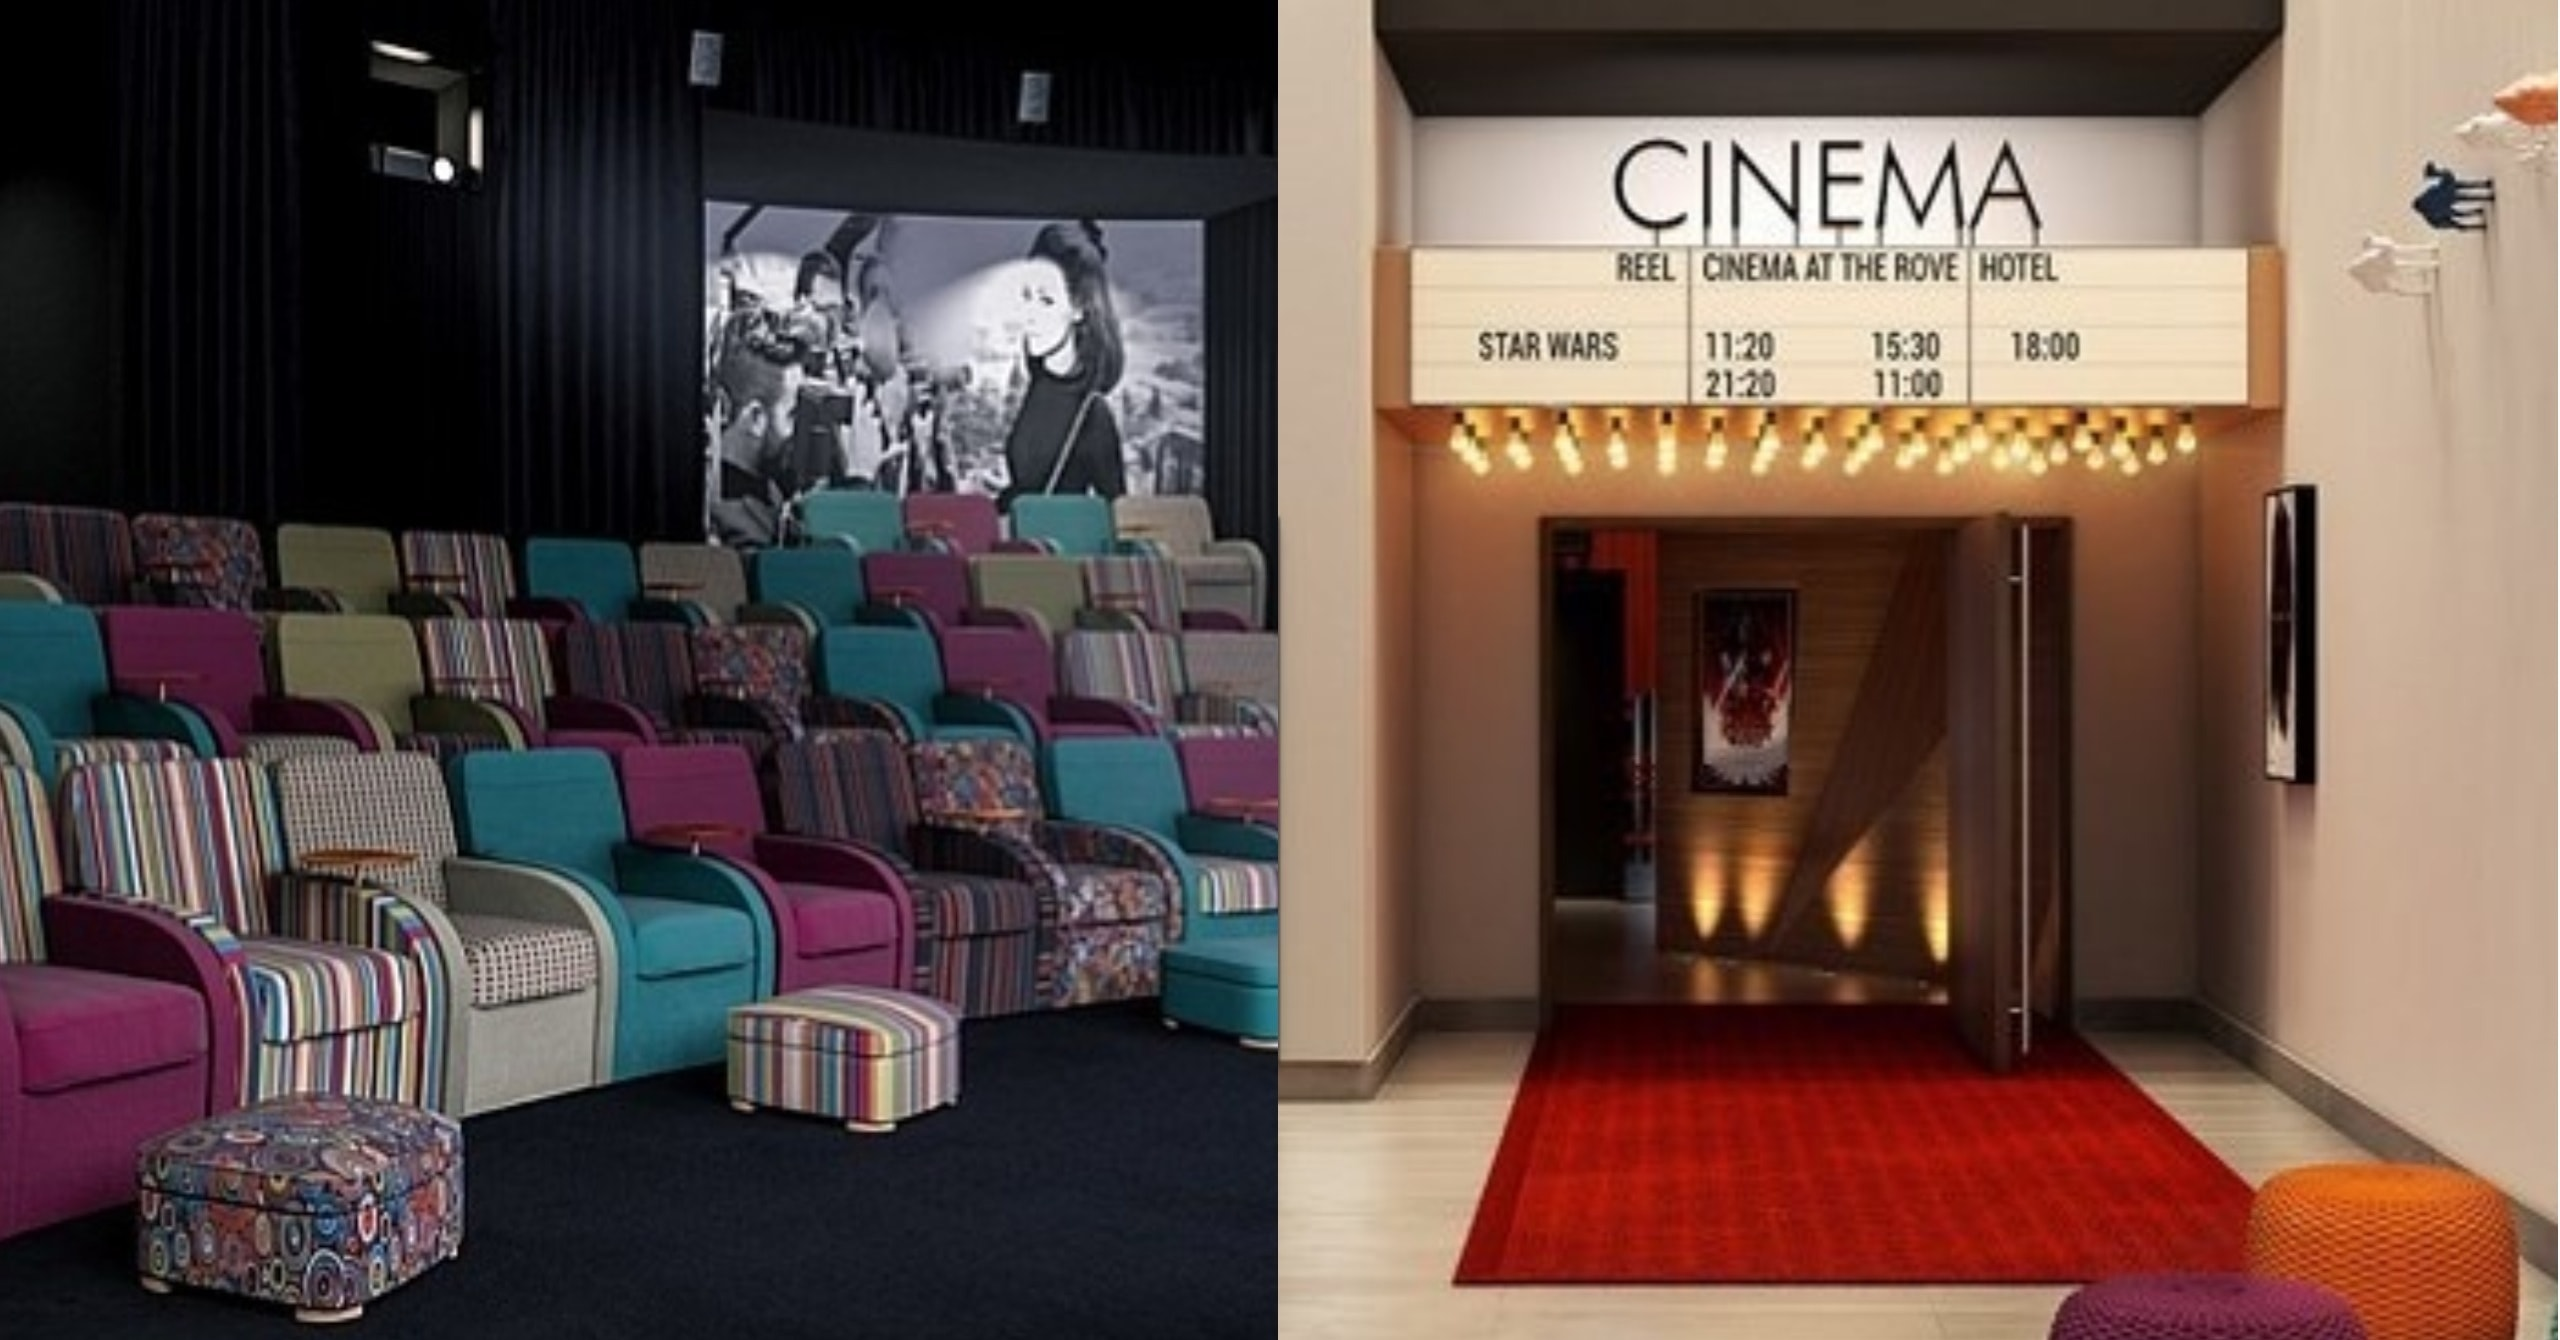 hotel-cinema-rove-downtown-dubai-reel-cinema-dubai- Cropped-min.jpg